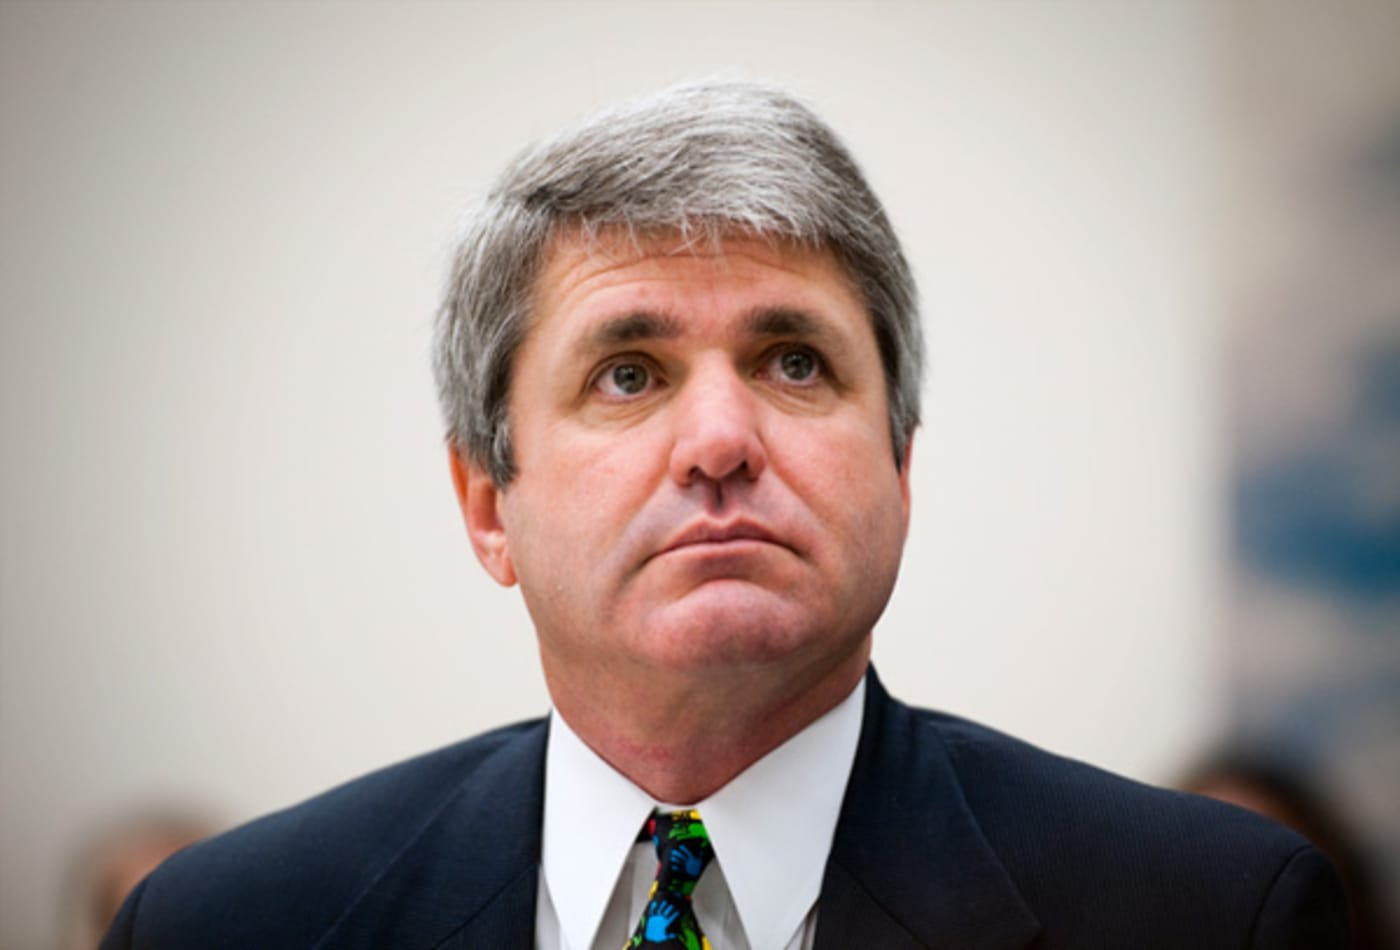 SS_richest_members_congress_2011_mccaul.jpg